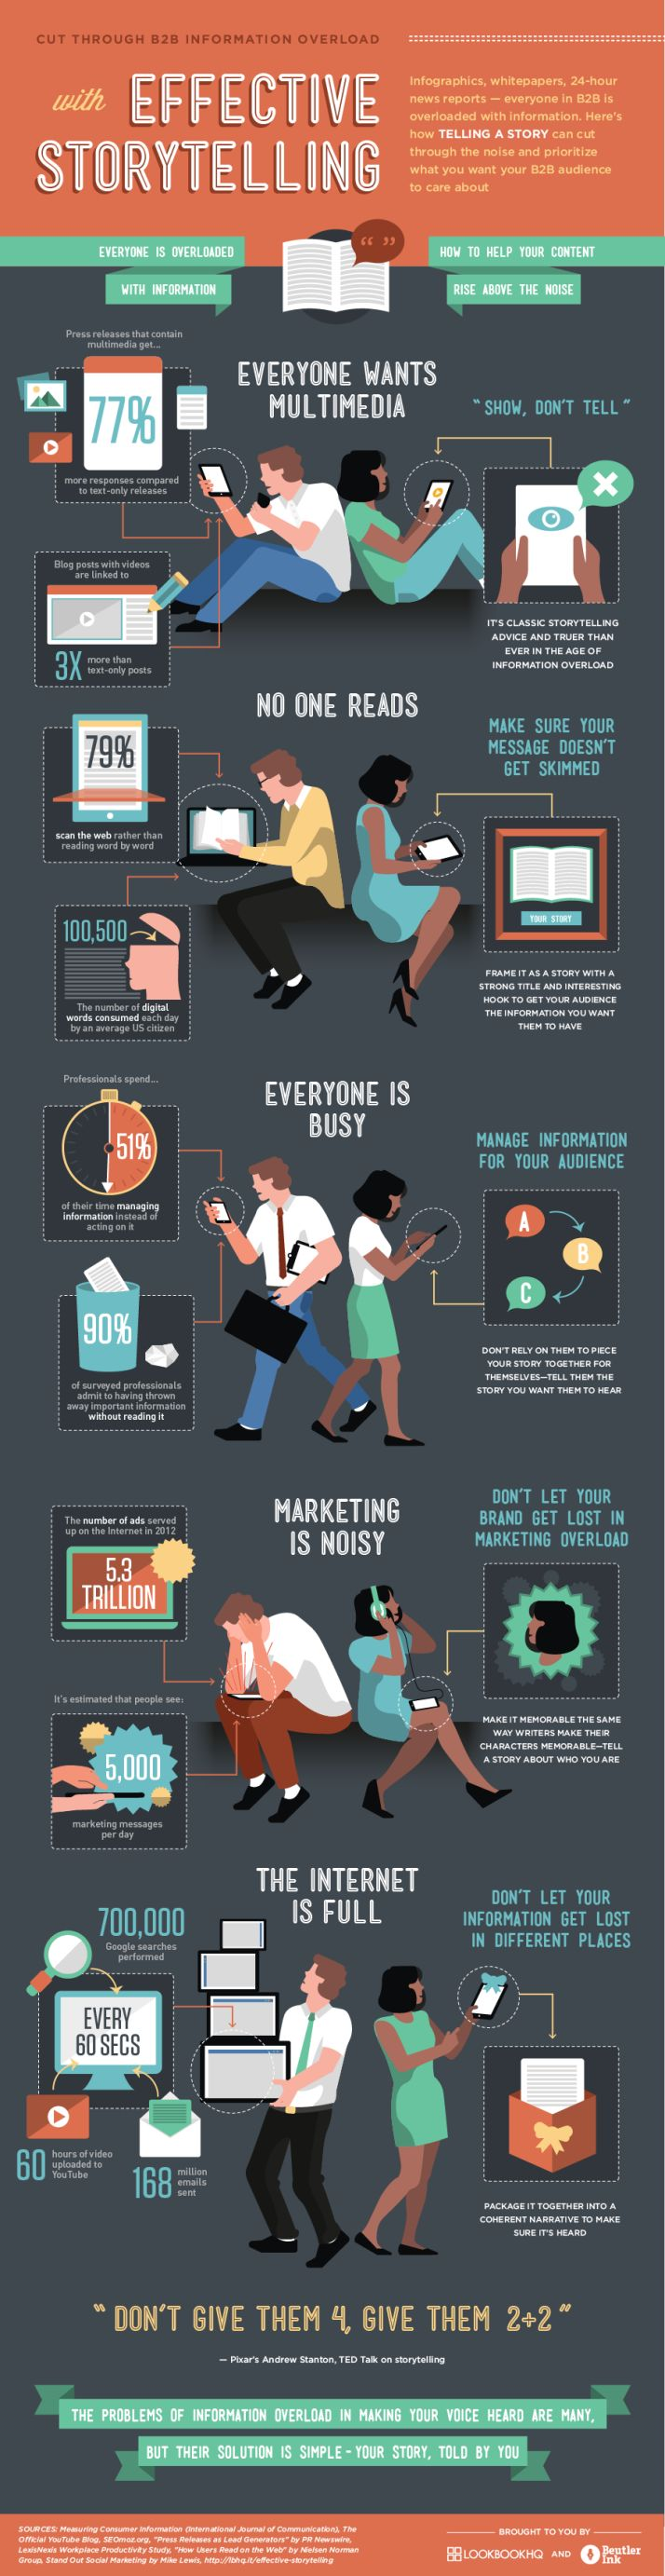 Effective #Storytelling #Socialmedia #digital #marketing #tools #infographics #media #brand #tech